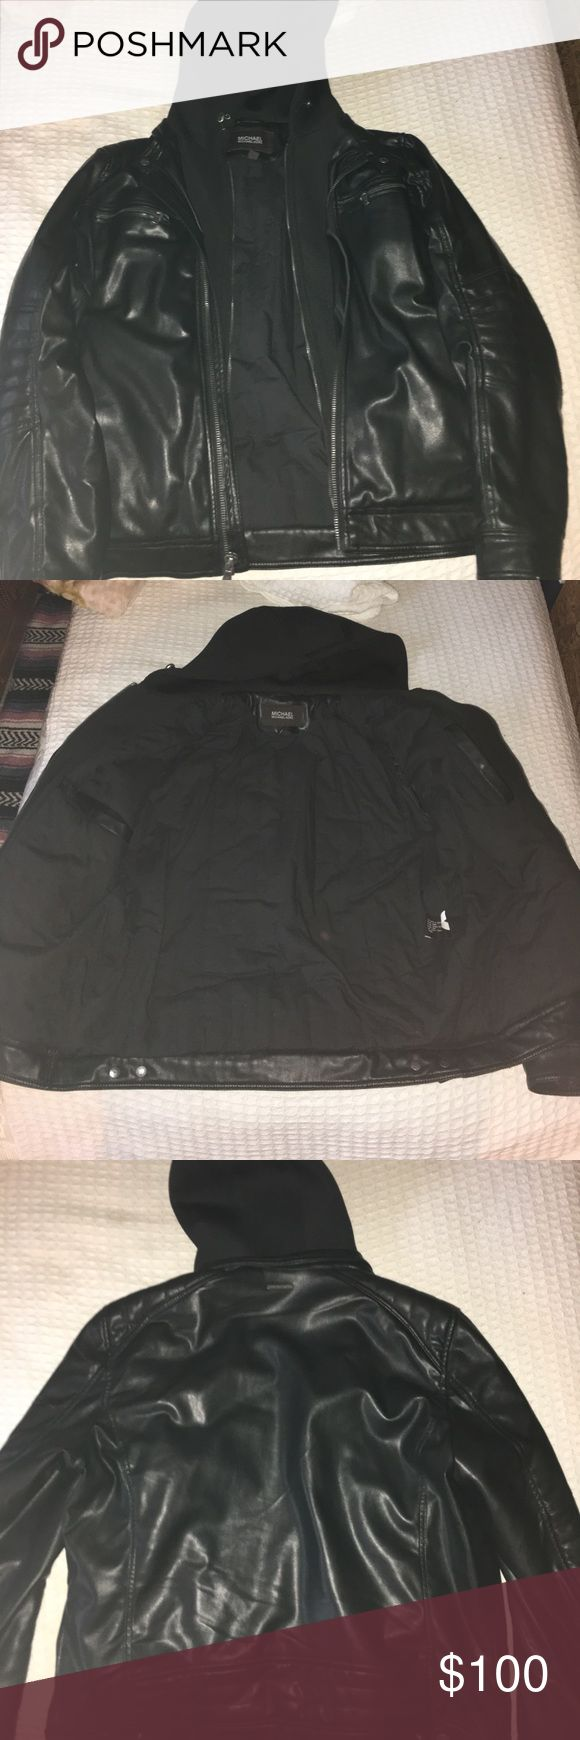 Micheal Kors Hooded mens jacket Perfect condition rarely worn Michael Kors Jackets & Coats